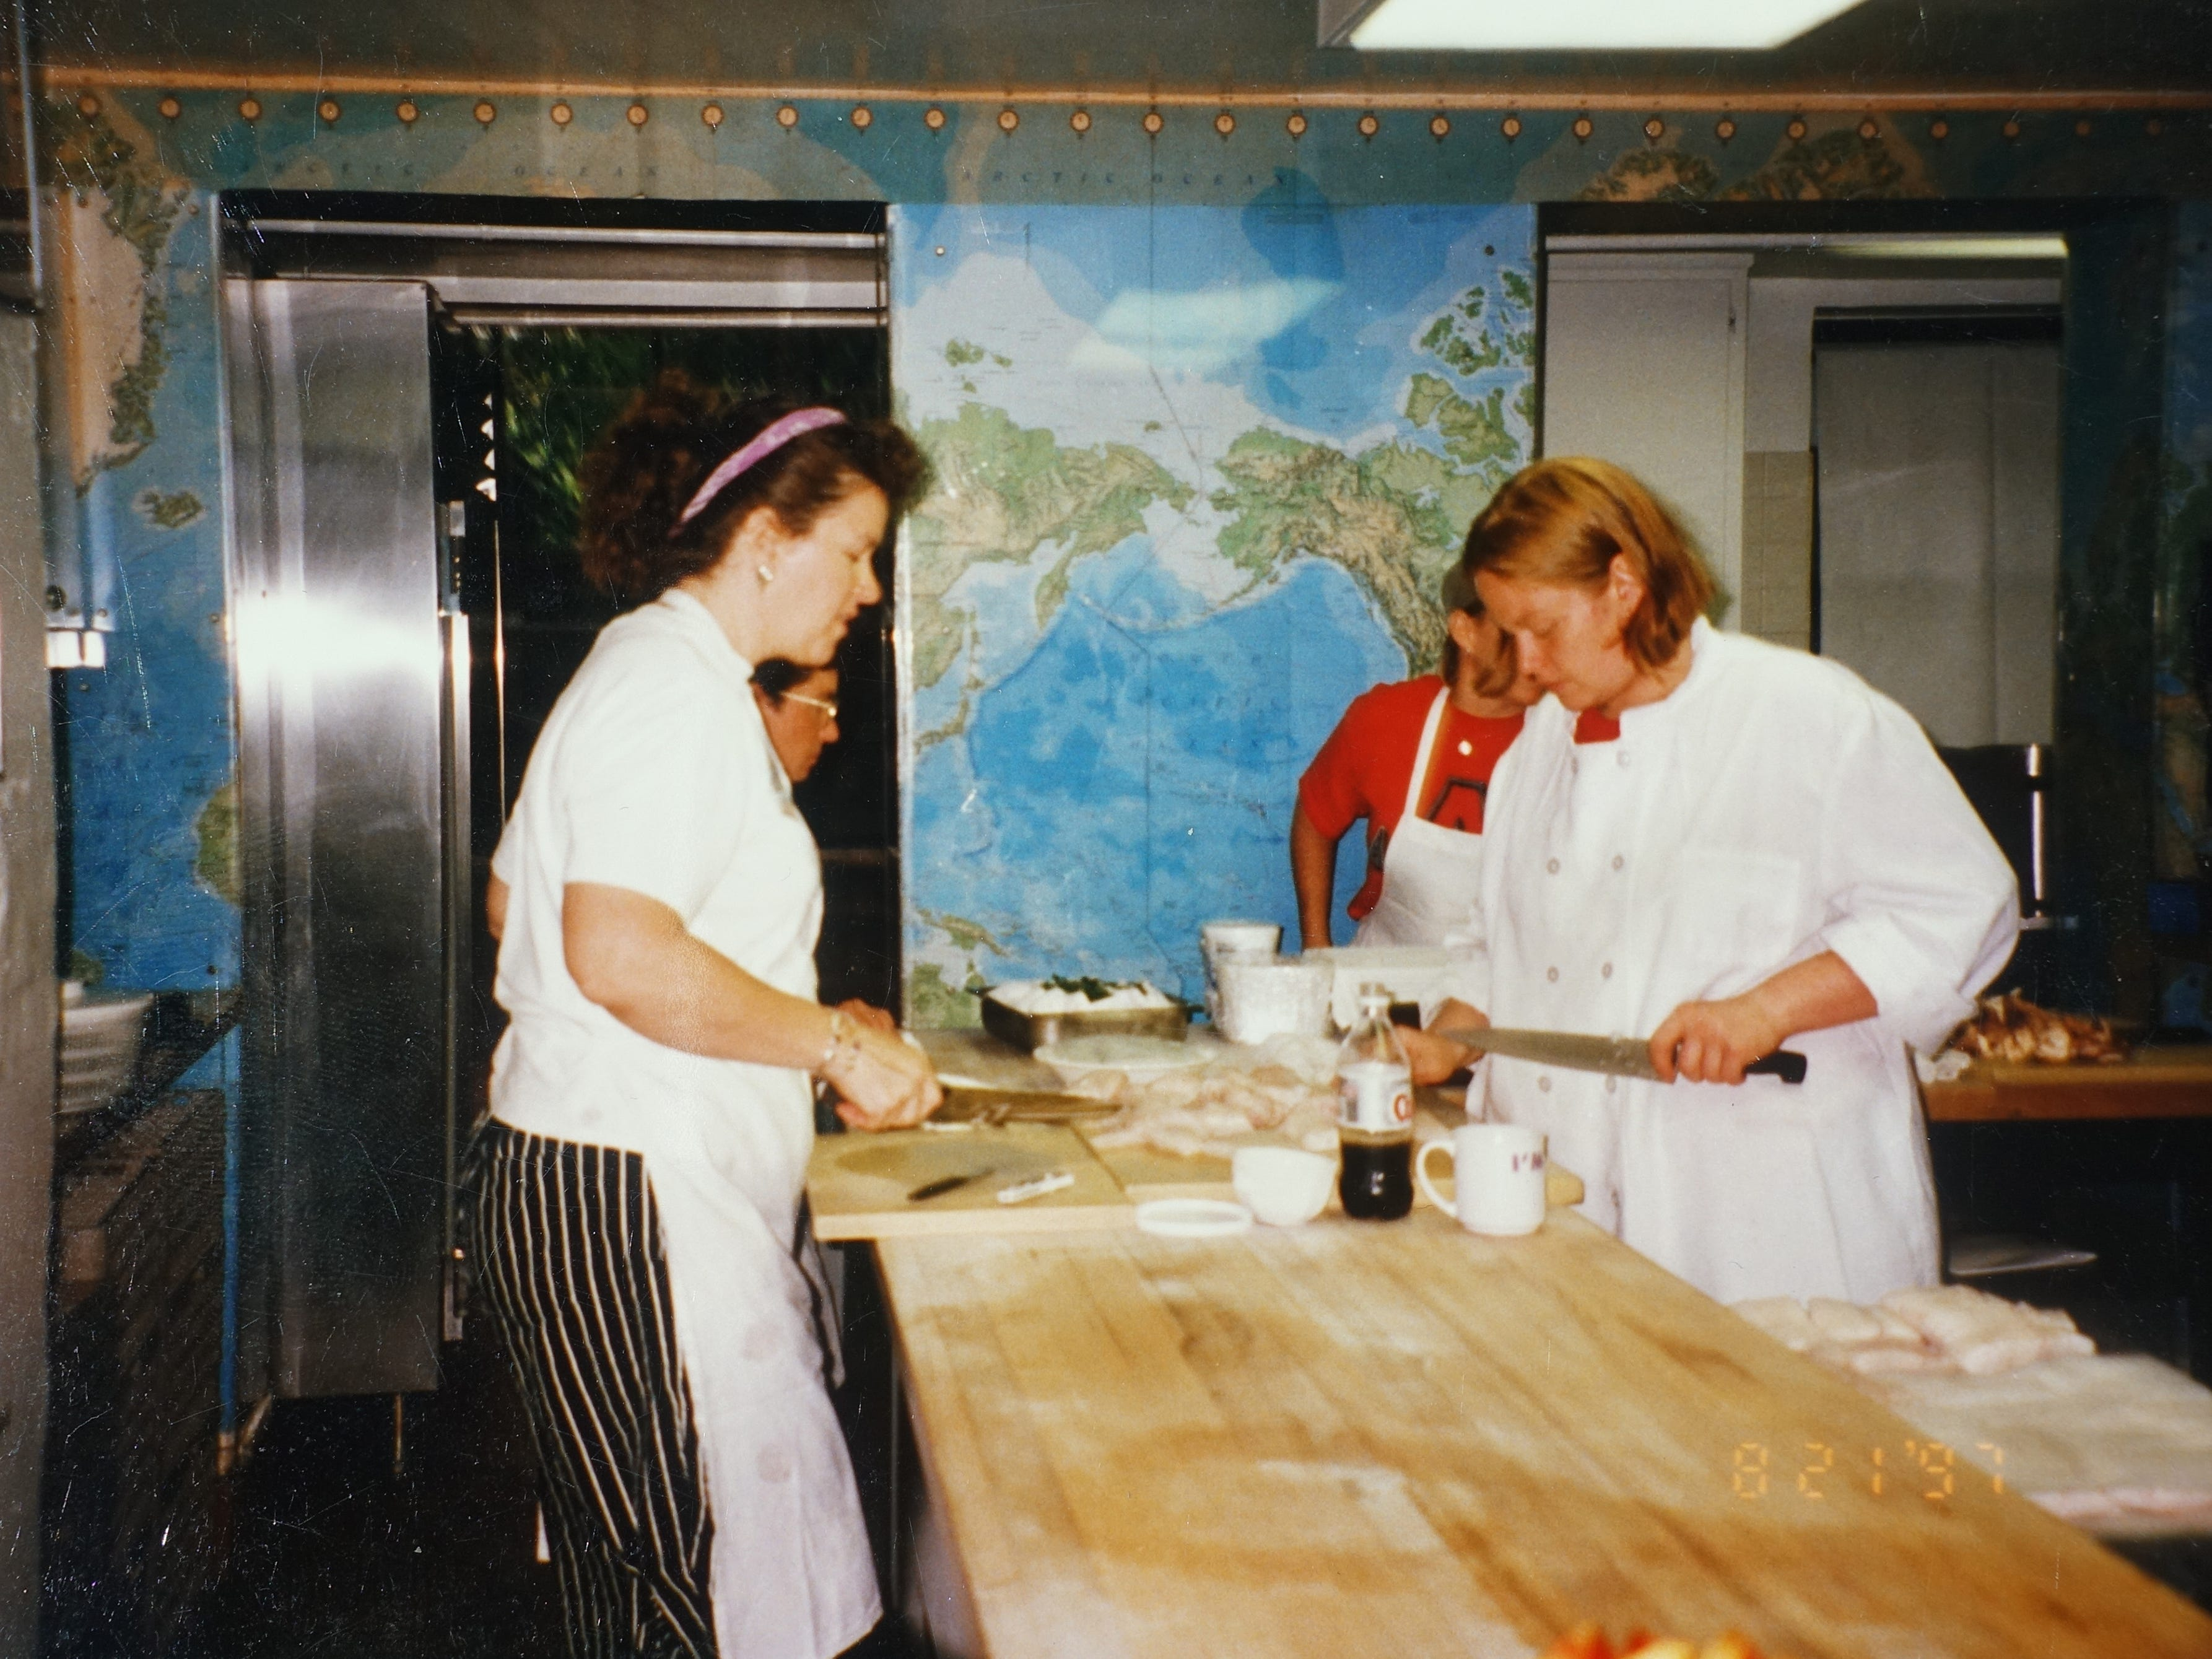 Chrysa Robertson (left) and Charleen Badman (right) cooking at the James Beard House in New York City in 1997.